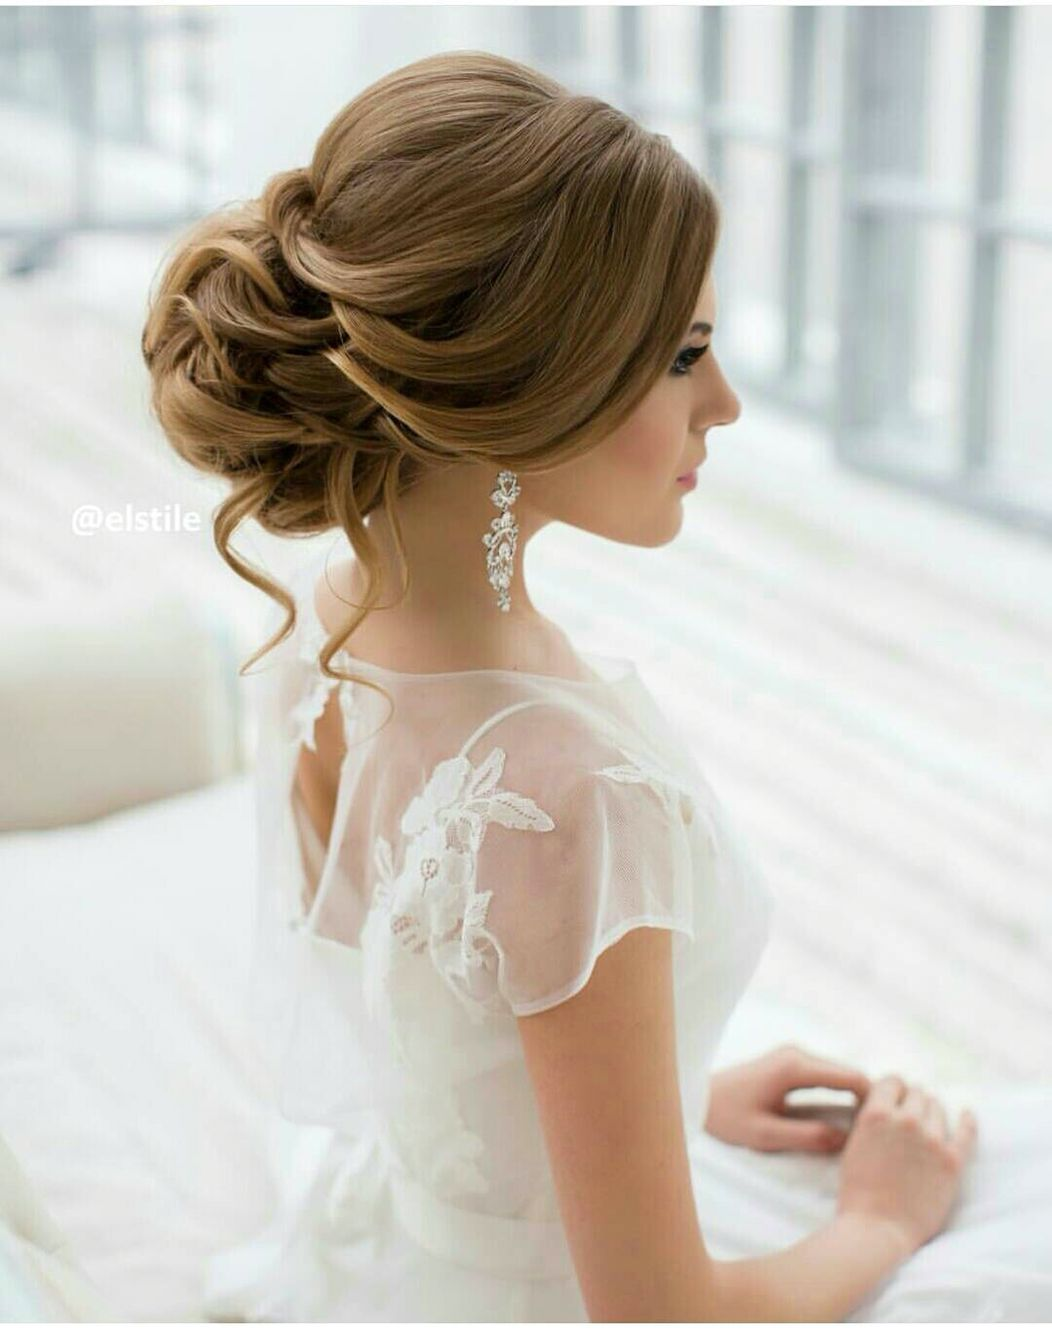 Pin by Kristýna Böhmová on Svatby | Pinterest | Hair wedding and ...